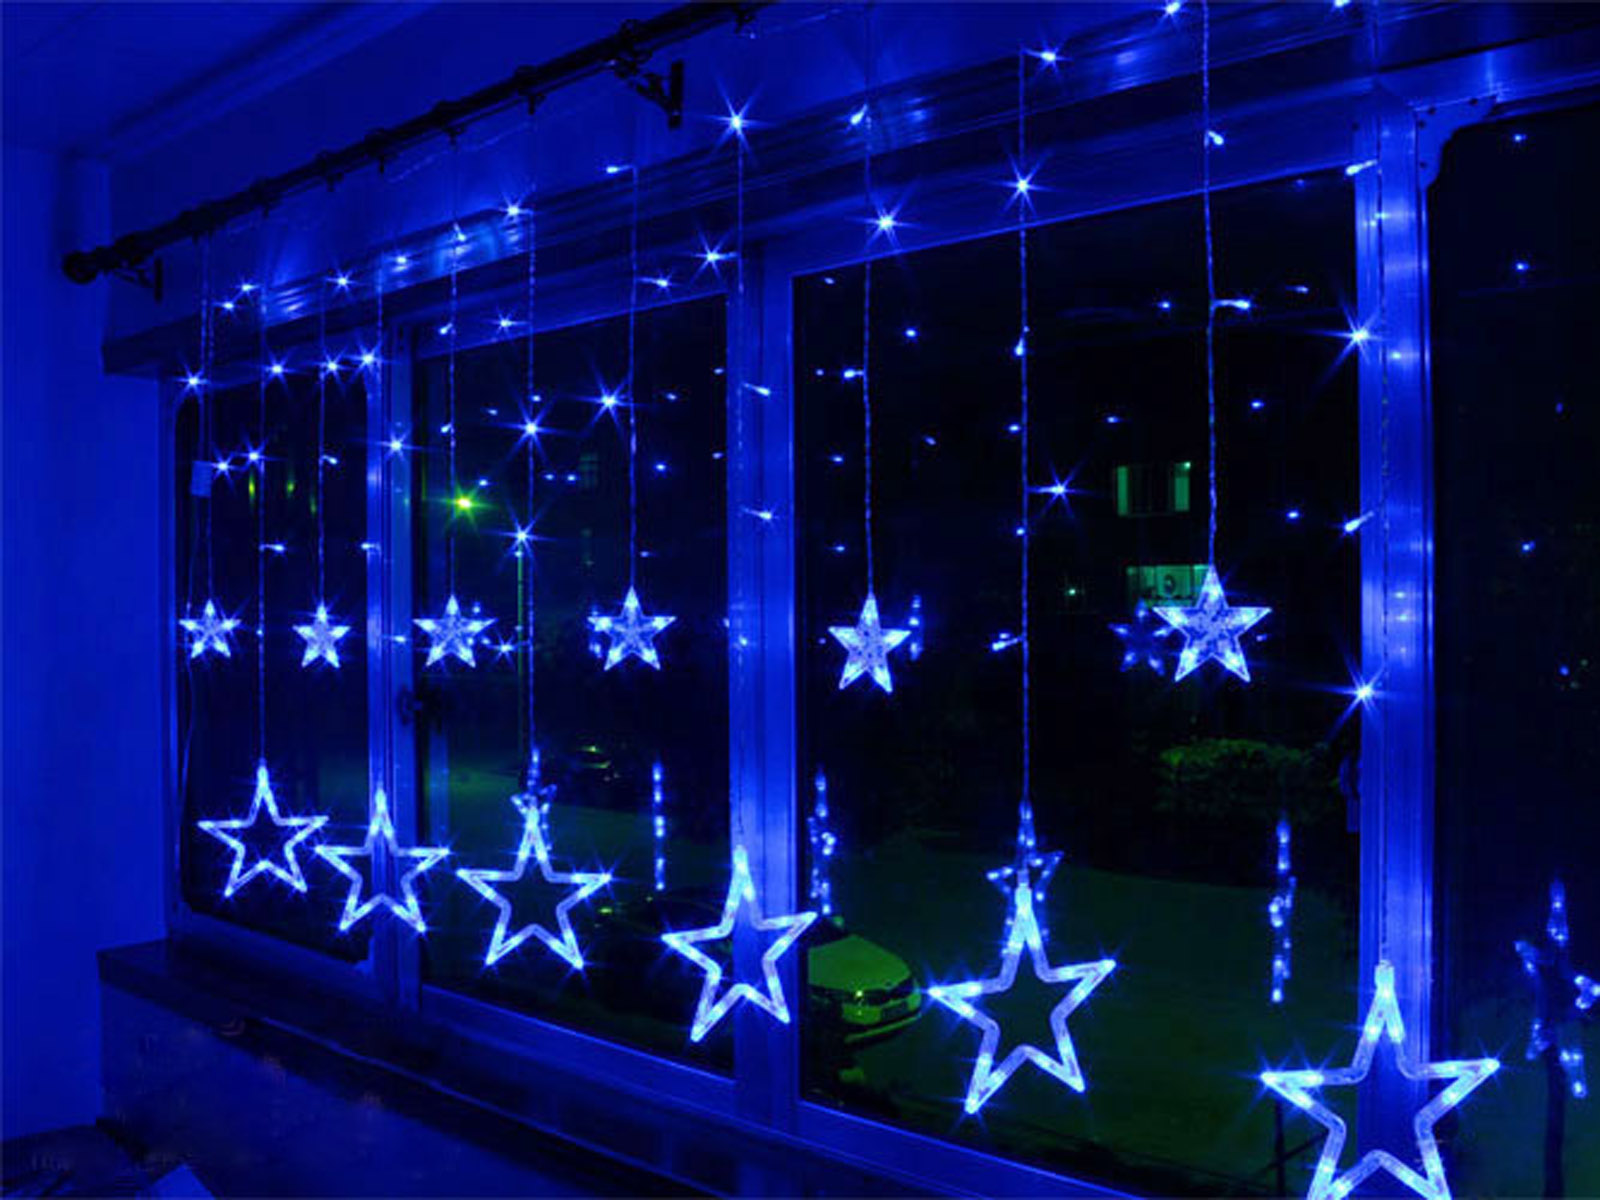 Christmas window decorations lights - Ac220v 240v 138 Leds Strobe Light Christmas Stars Style Decorative String Light For Christmas Partys Wedding New Year Decorations Etc